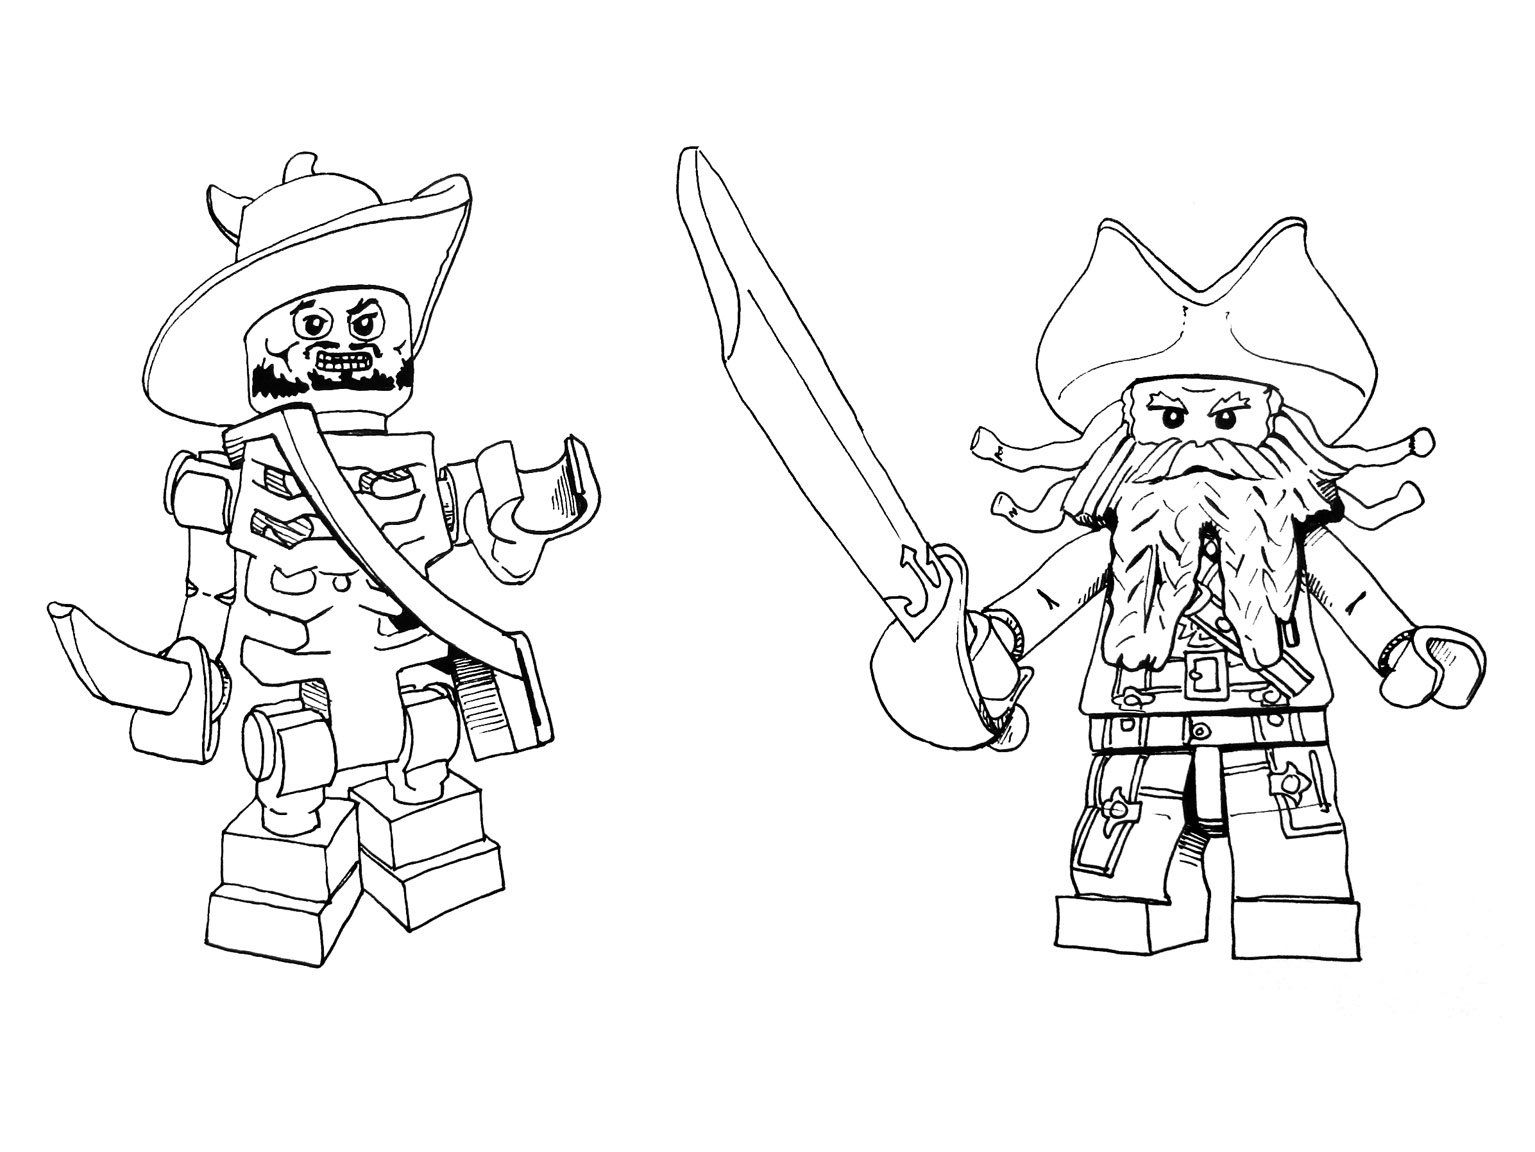 lego pirate coloring page | Pirate Party | Pirate coloring ...